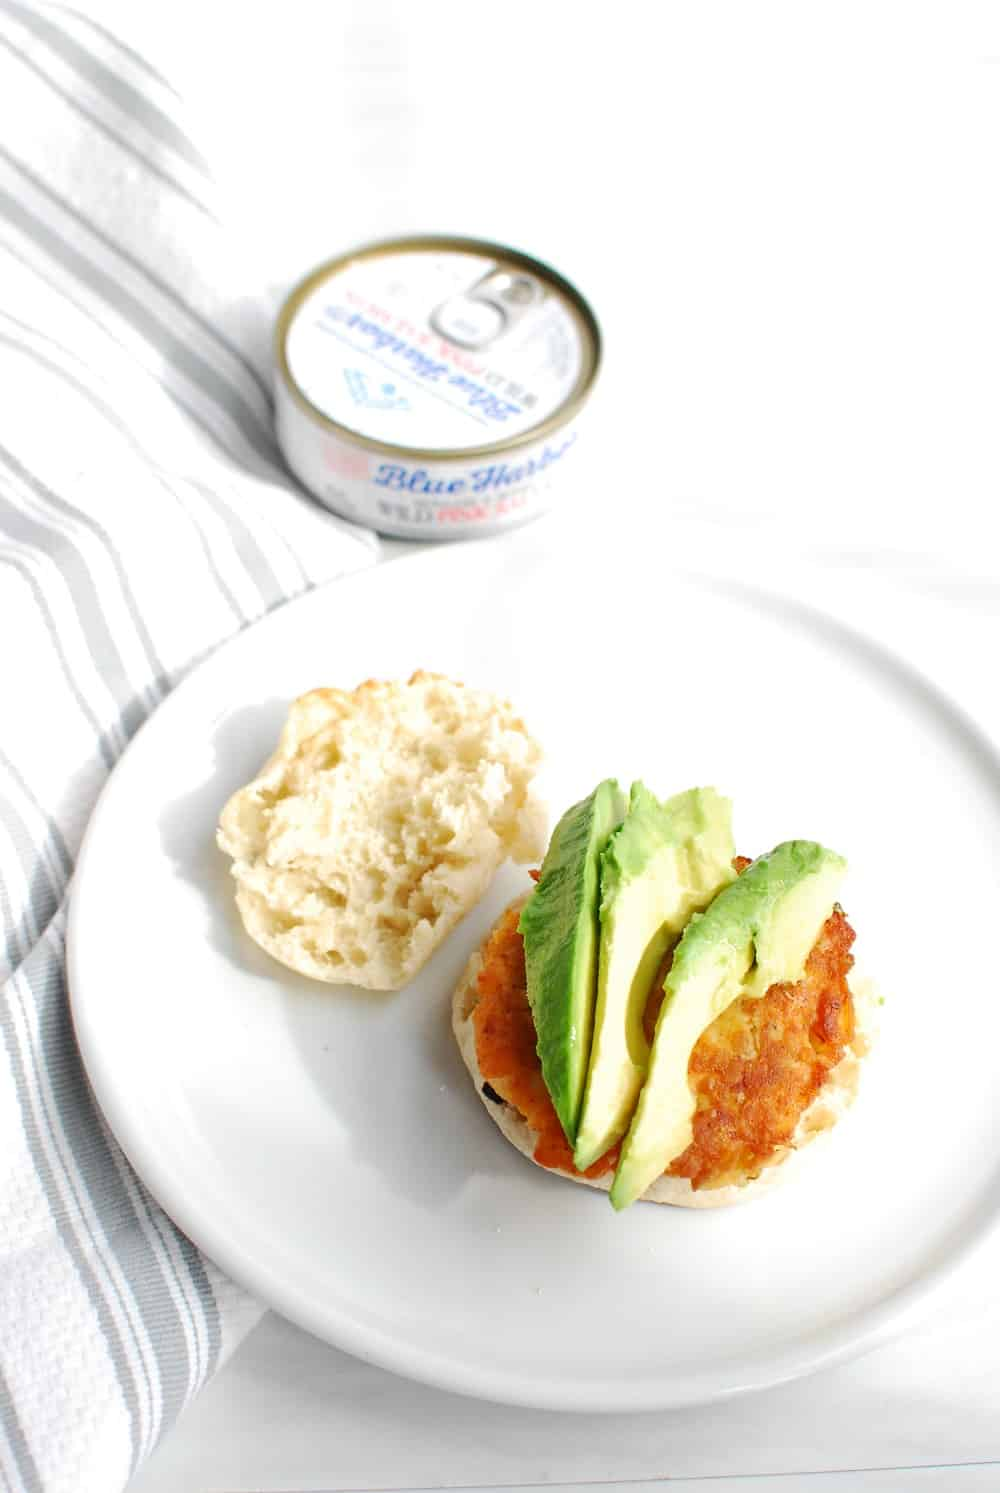 an english muffin topped with a salmon patty and several slices of avocado, next to a can of salmon